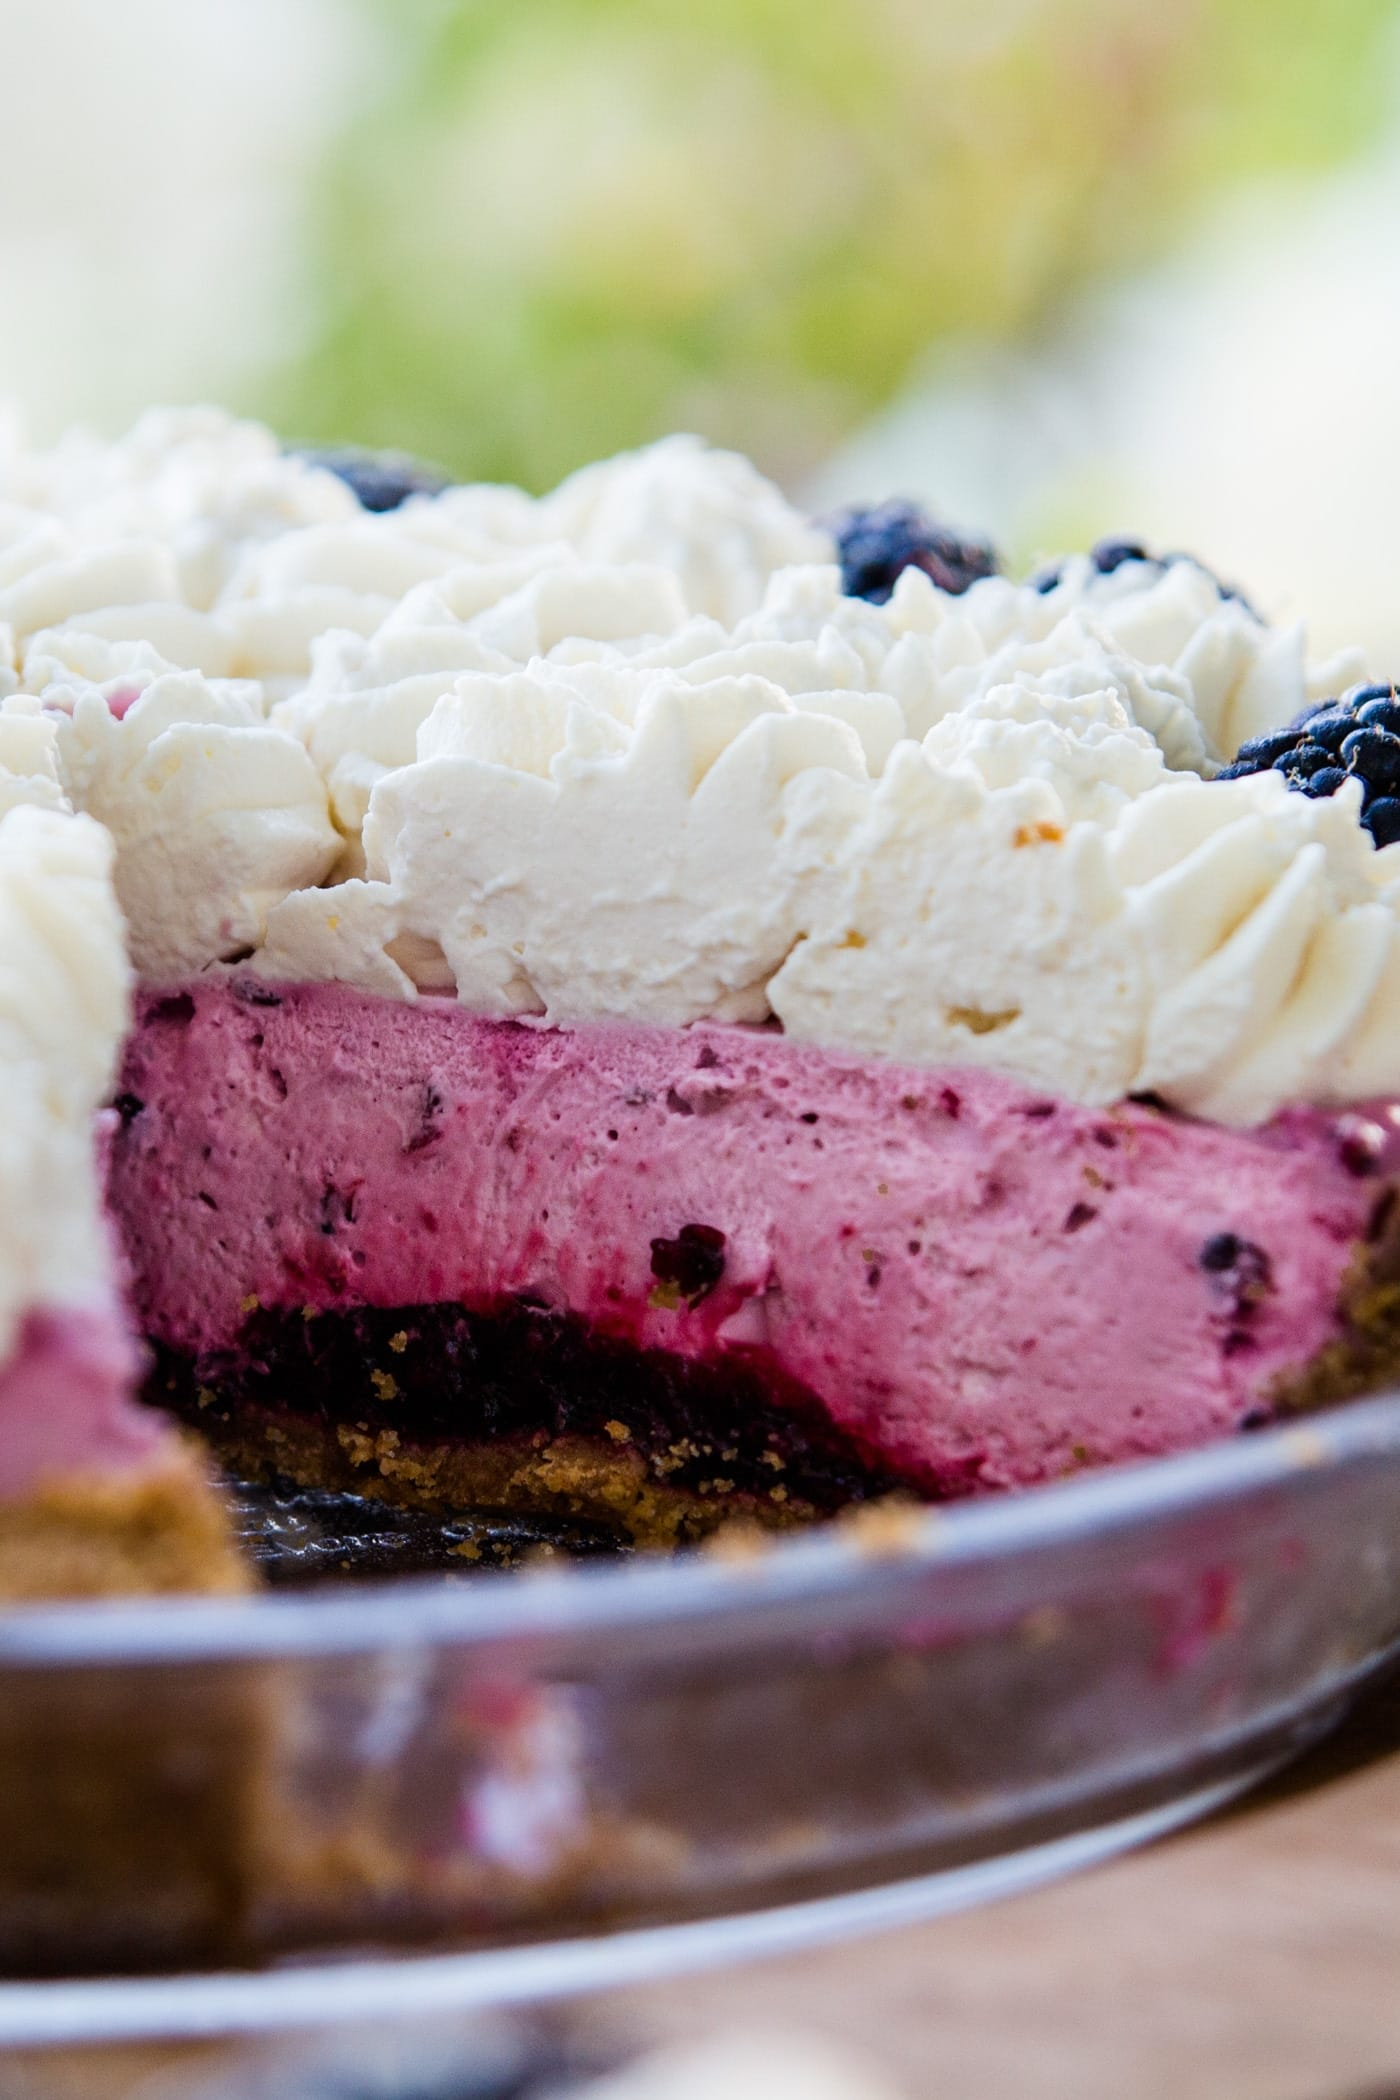 Blackberry icebox pie sitting on wood serving board with slice taken out showing the graham cracker crust layer, blackberry filling layer and whipped cream layer with who blackberries on top